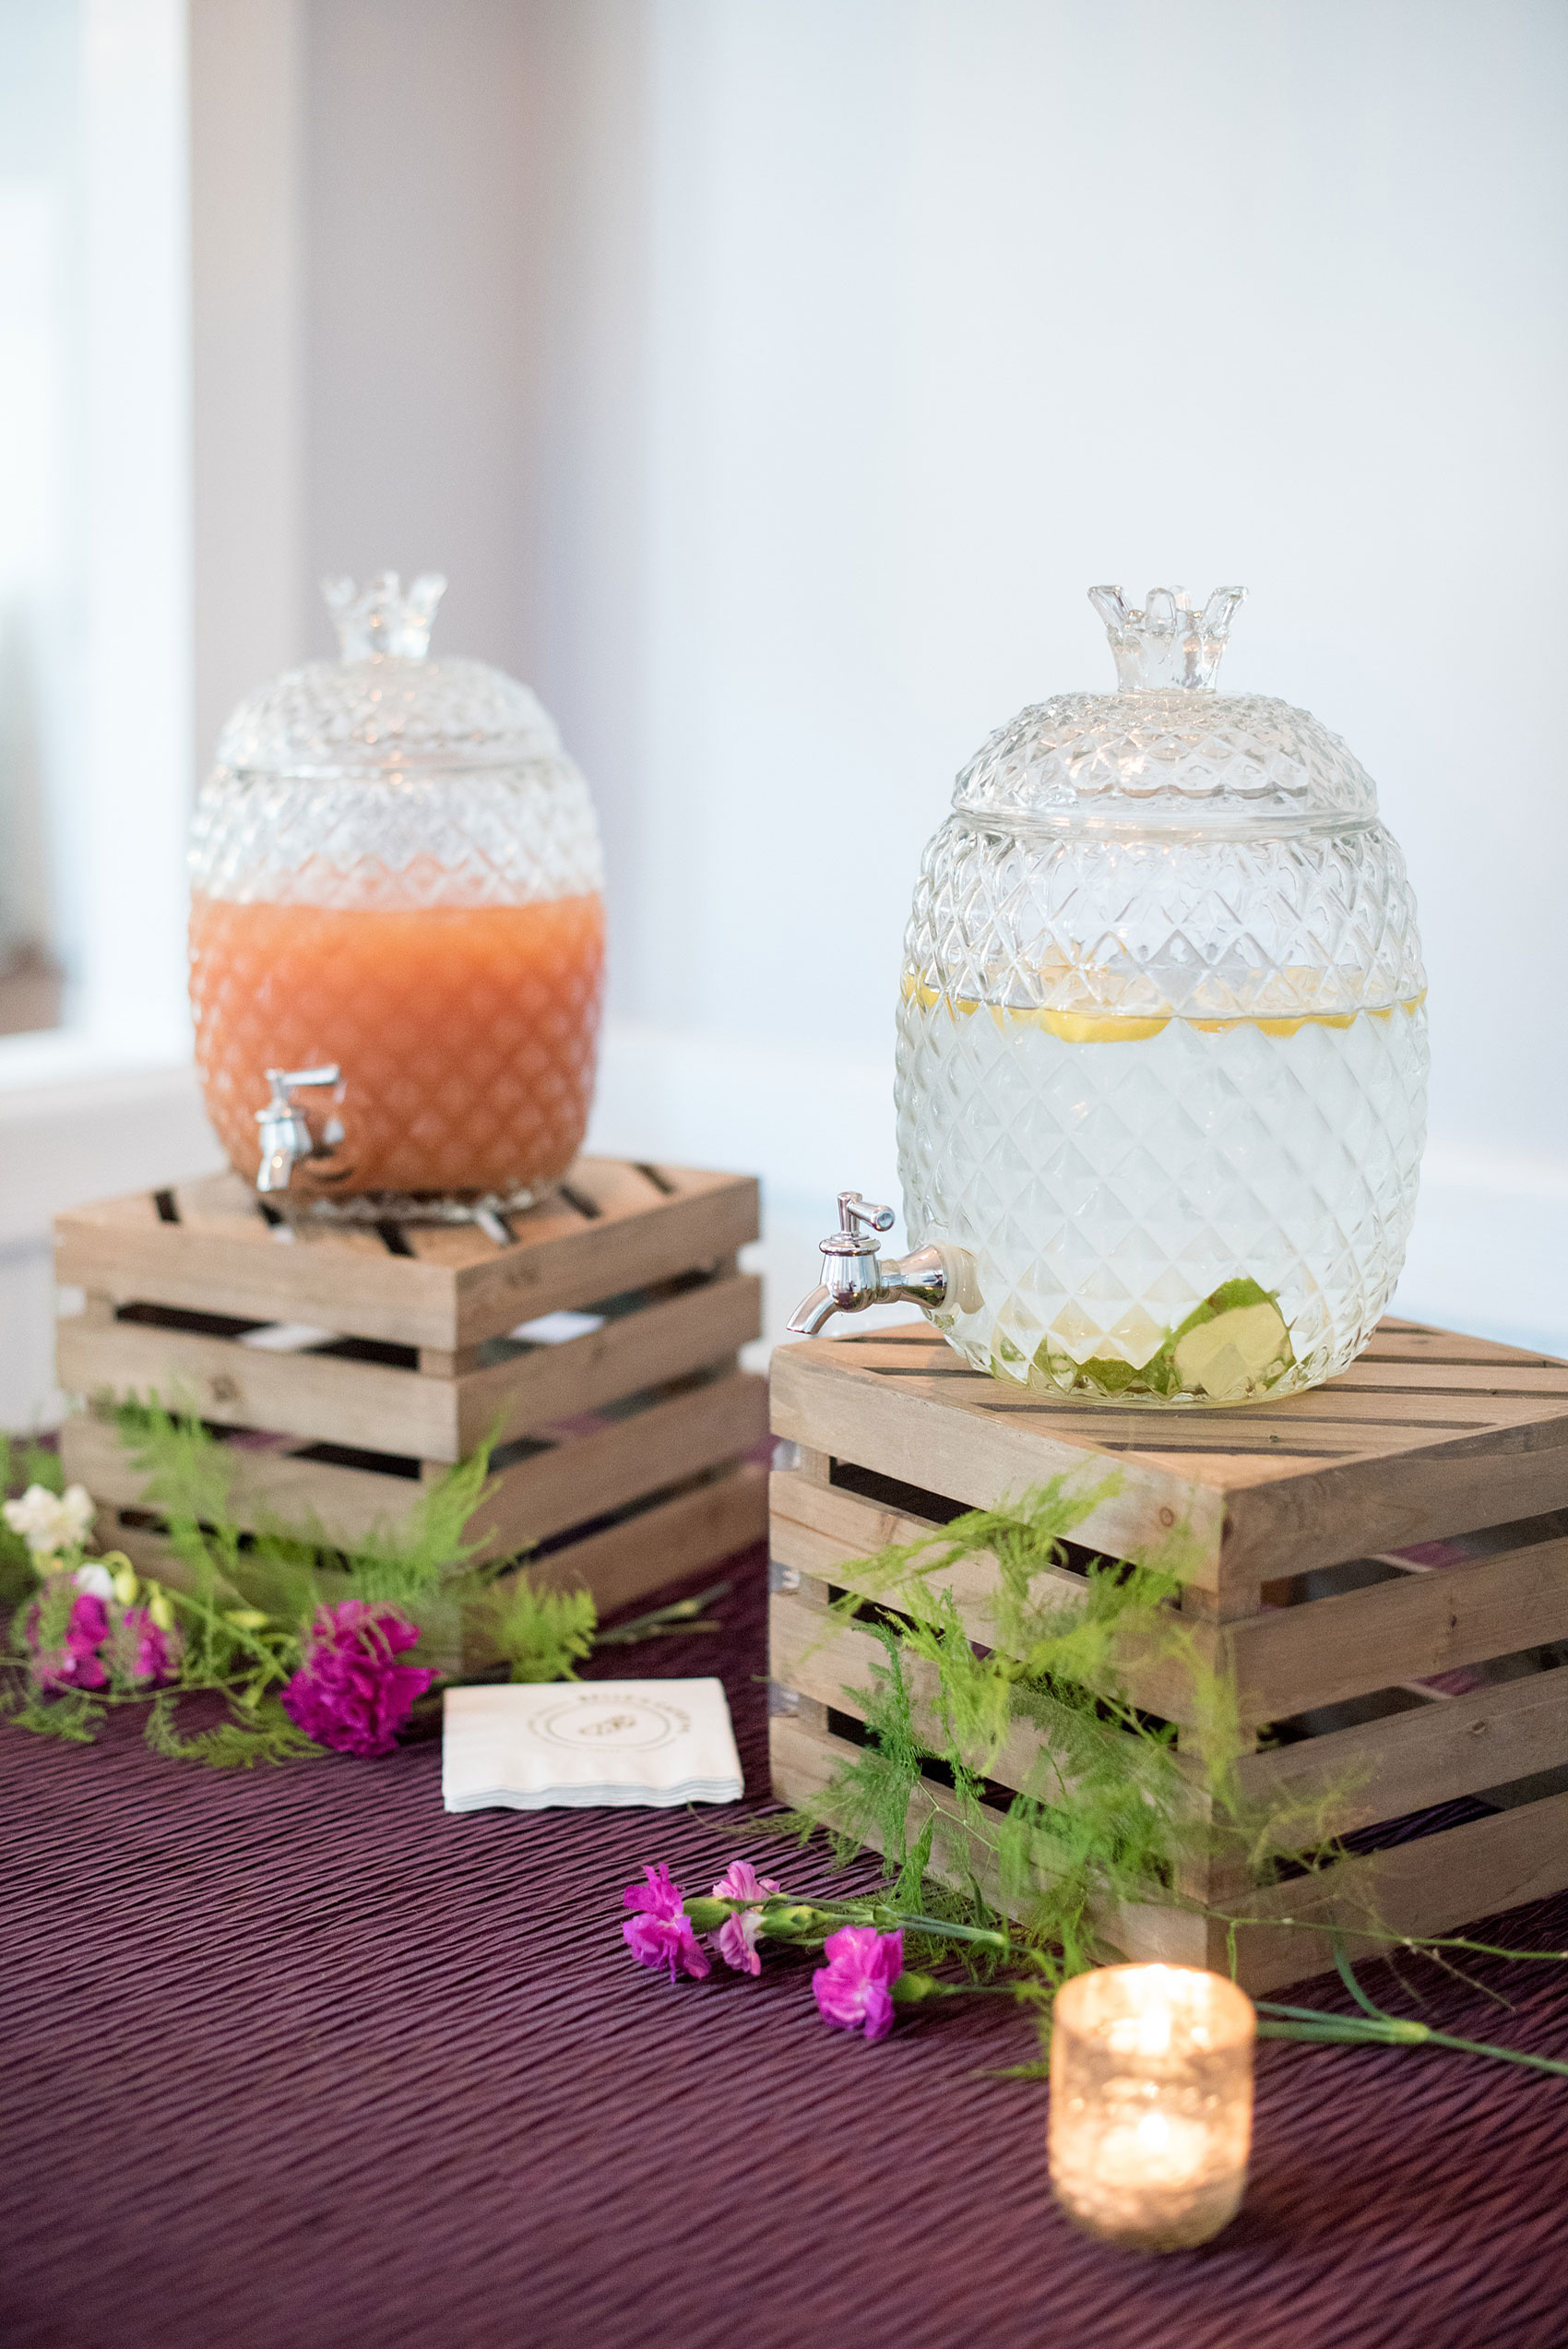 Mikkel Paige Photography pictures of a wedding at Leslie-Alford Mim's House in North Carolina for a Mad Dash Weddings event. Photo of a summer drink station from Belle's Catering.